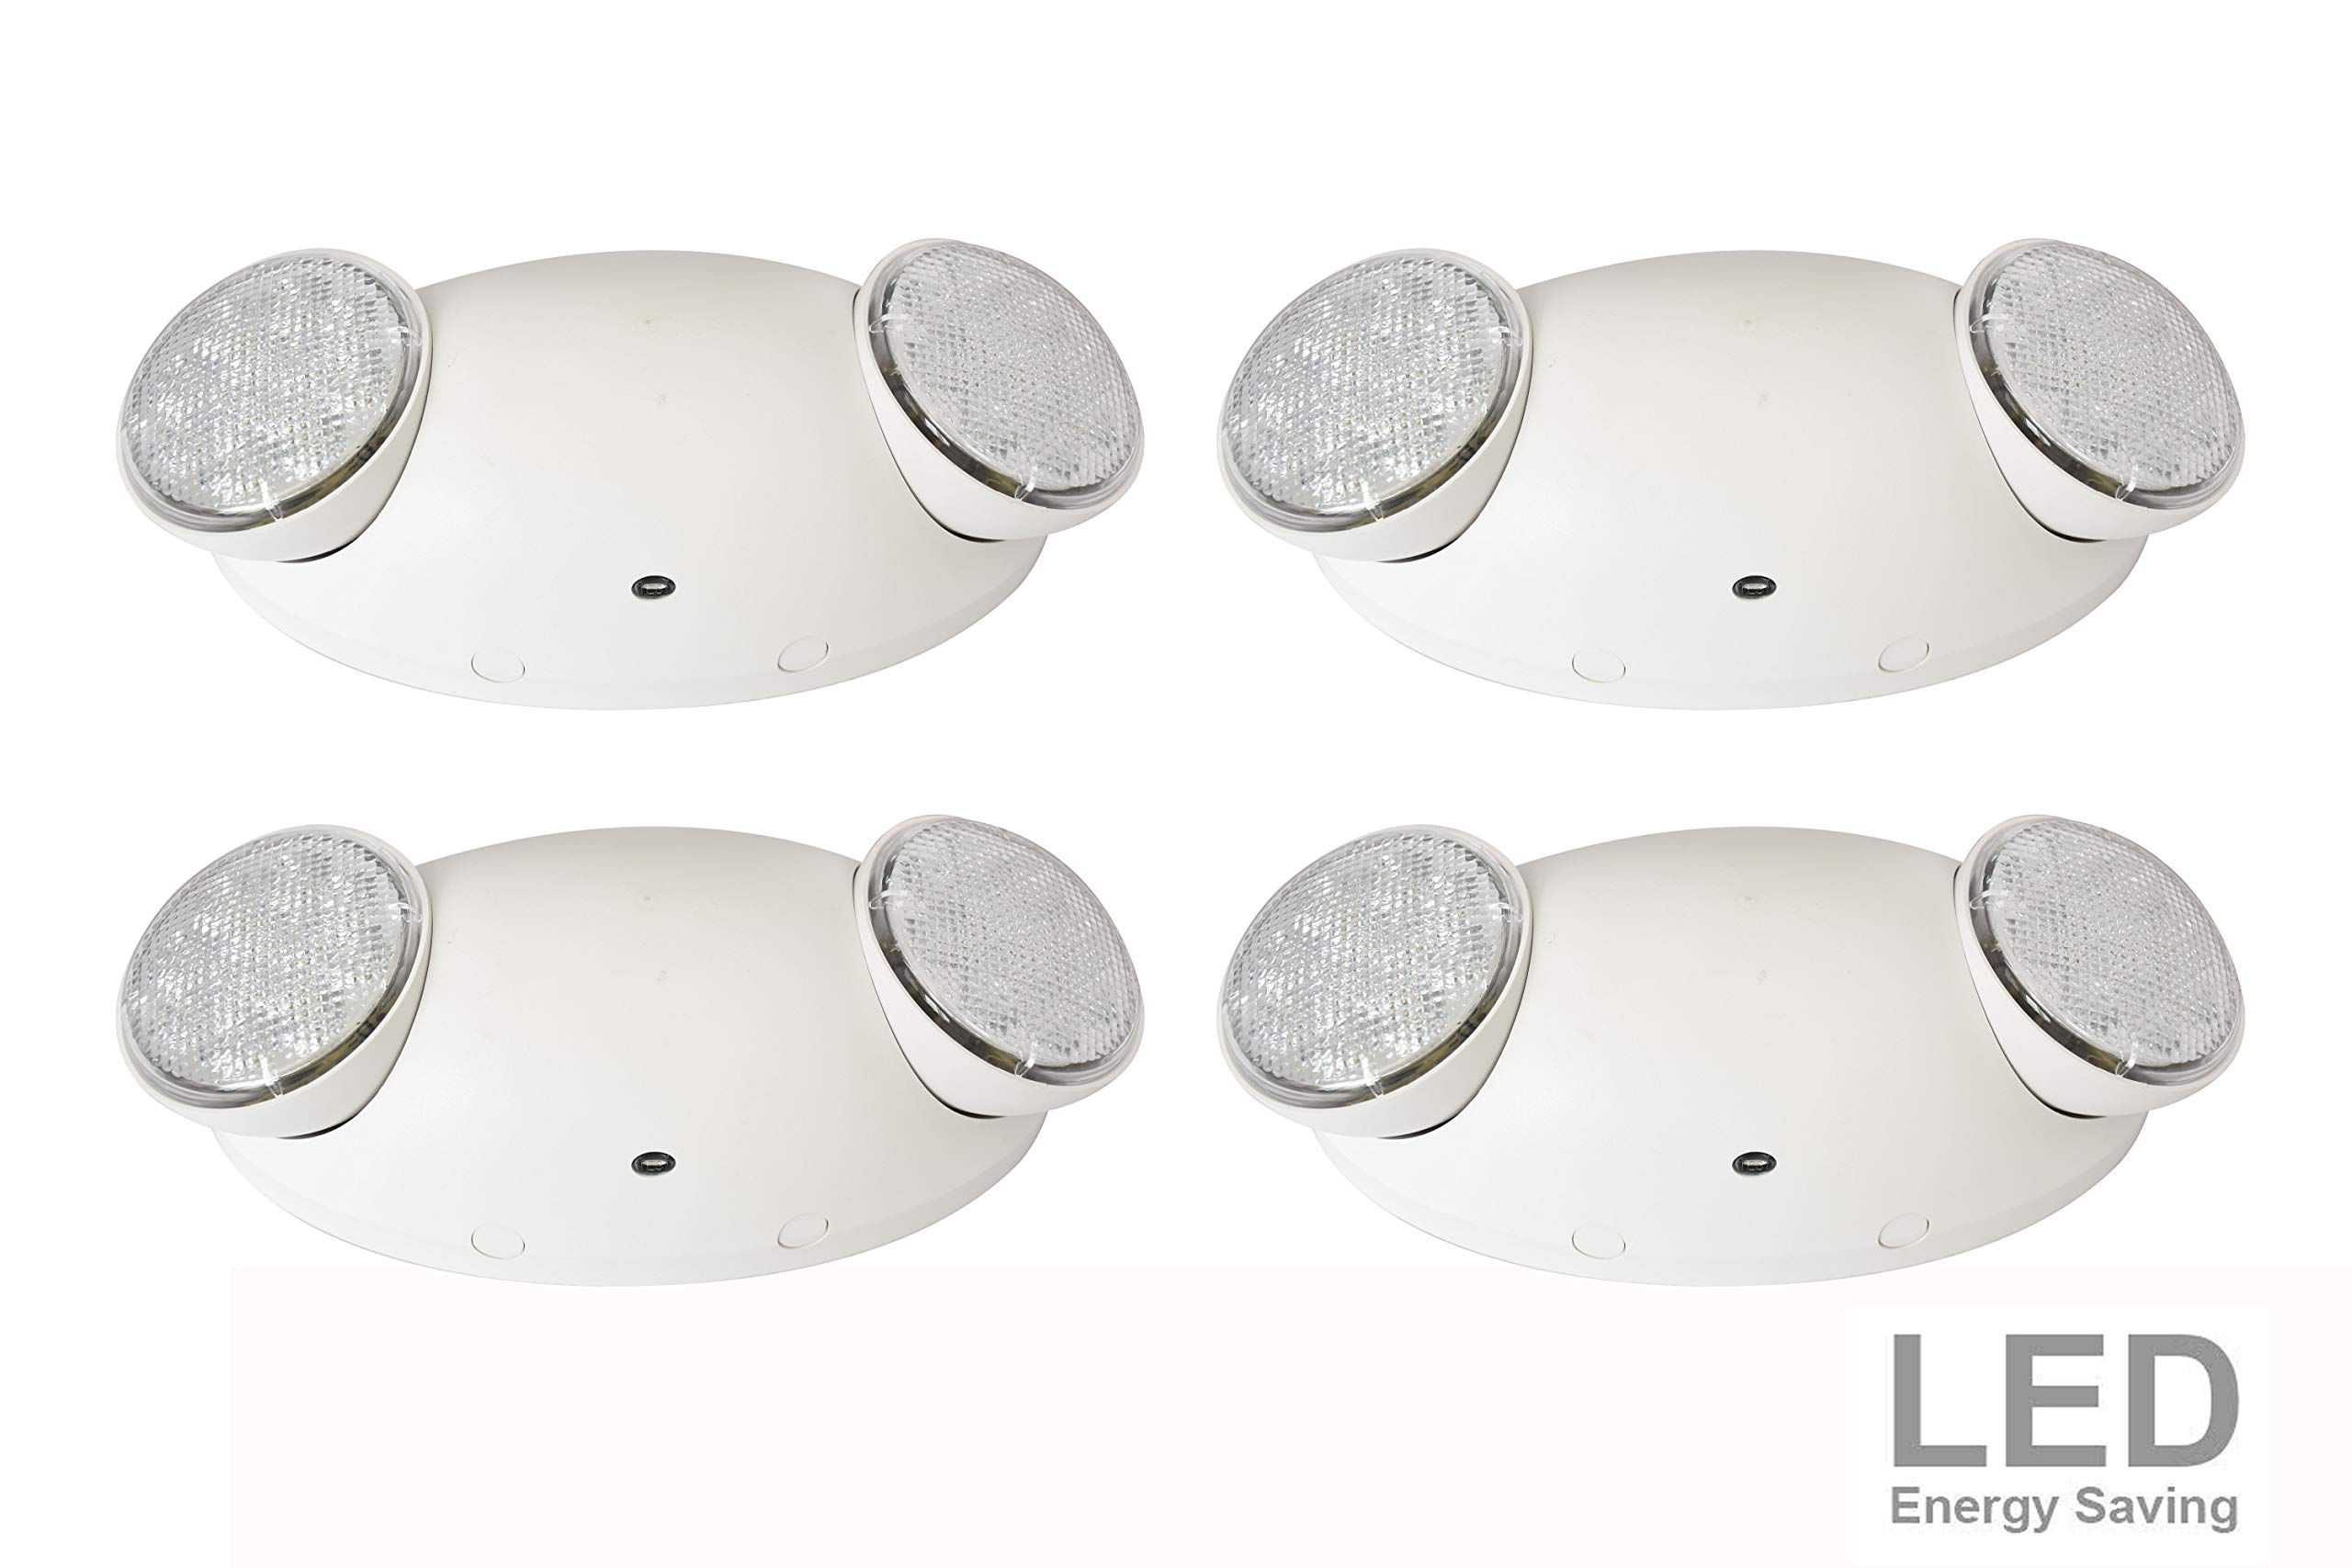 LIT-PaTH LED Emergency Exit Lighting Fixtures with 2 LED Bug Eye Heads and Back Up Batteries- US Standard Emergency Light, UL 924 and CEC Qualified, 120-277 Voltage (4-Pack)